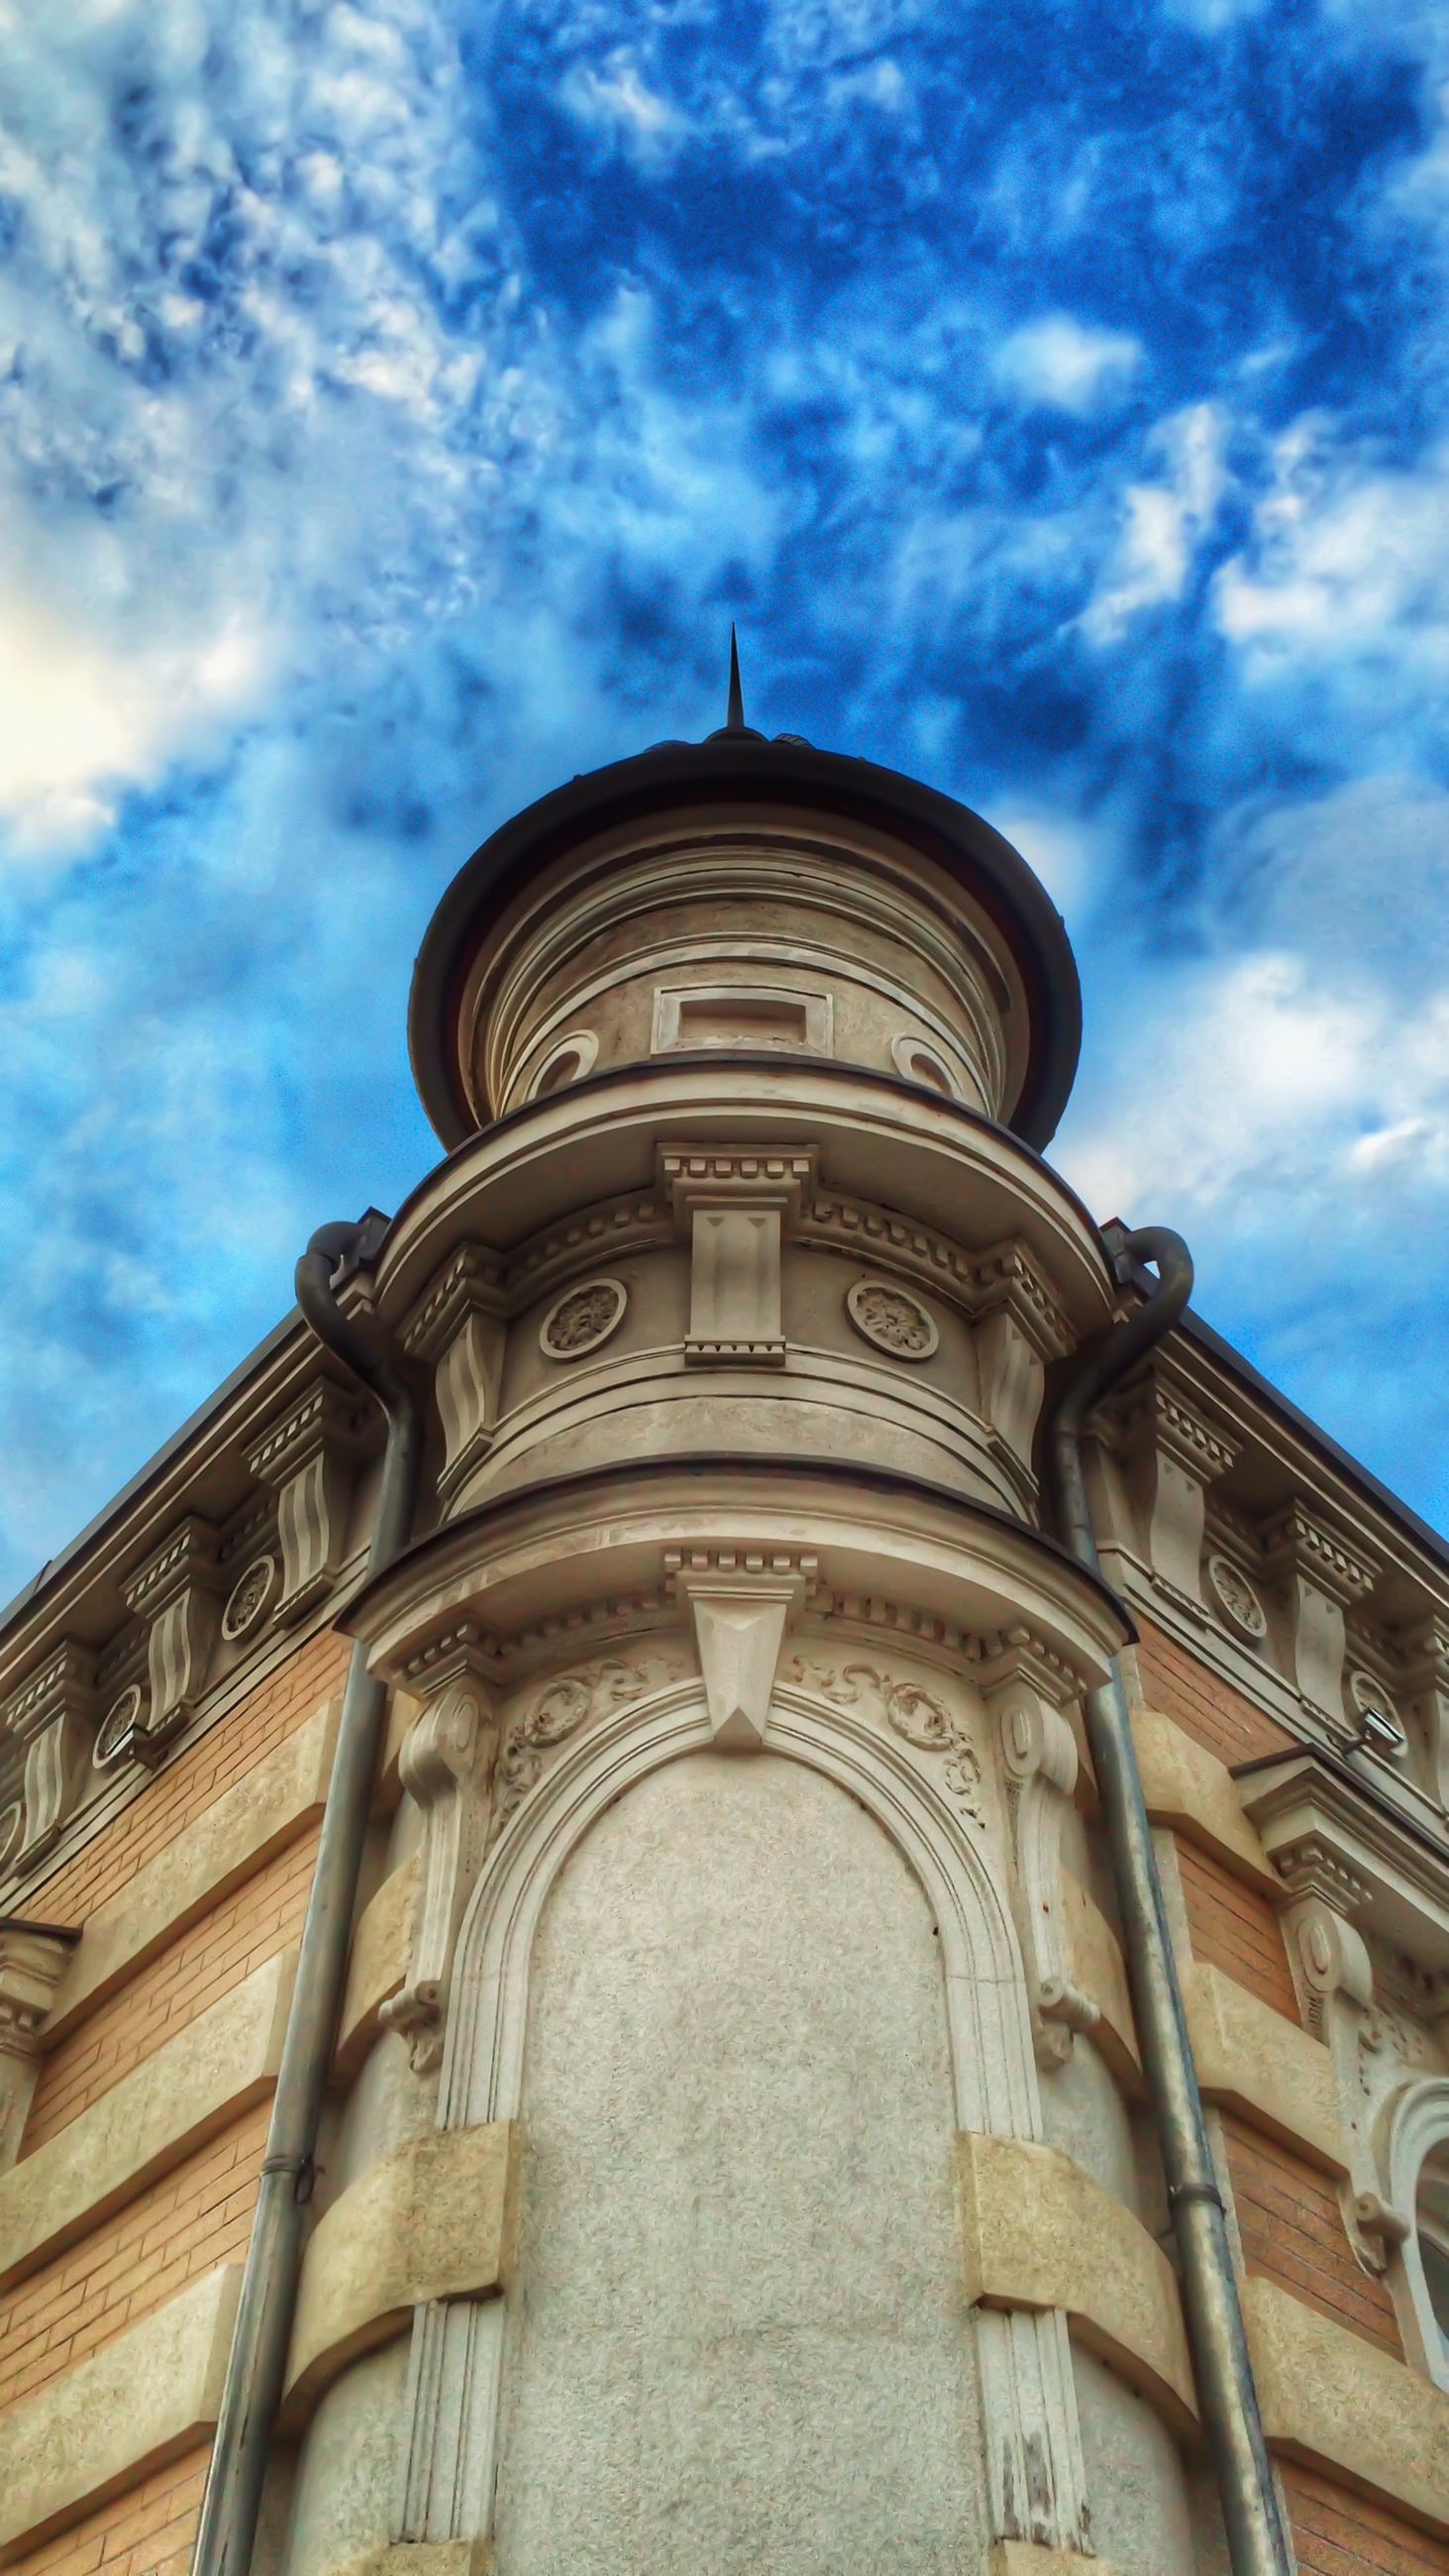 architecture, low angle view, building exterior, built structure, sky, cloud - sky, cloud, church, religion, cloudy, history, arch, place of worship, outdoors, day, high section, no people, city, travel destinations